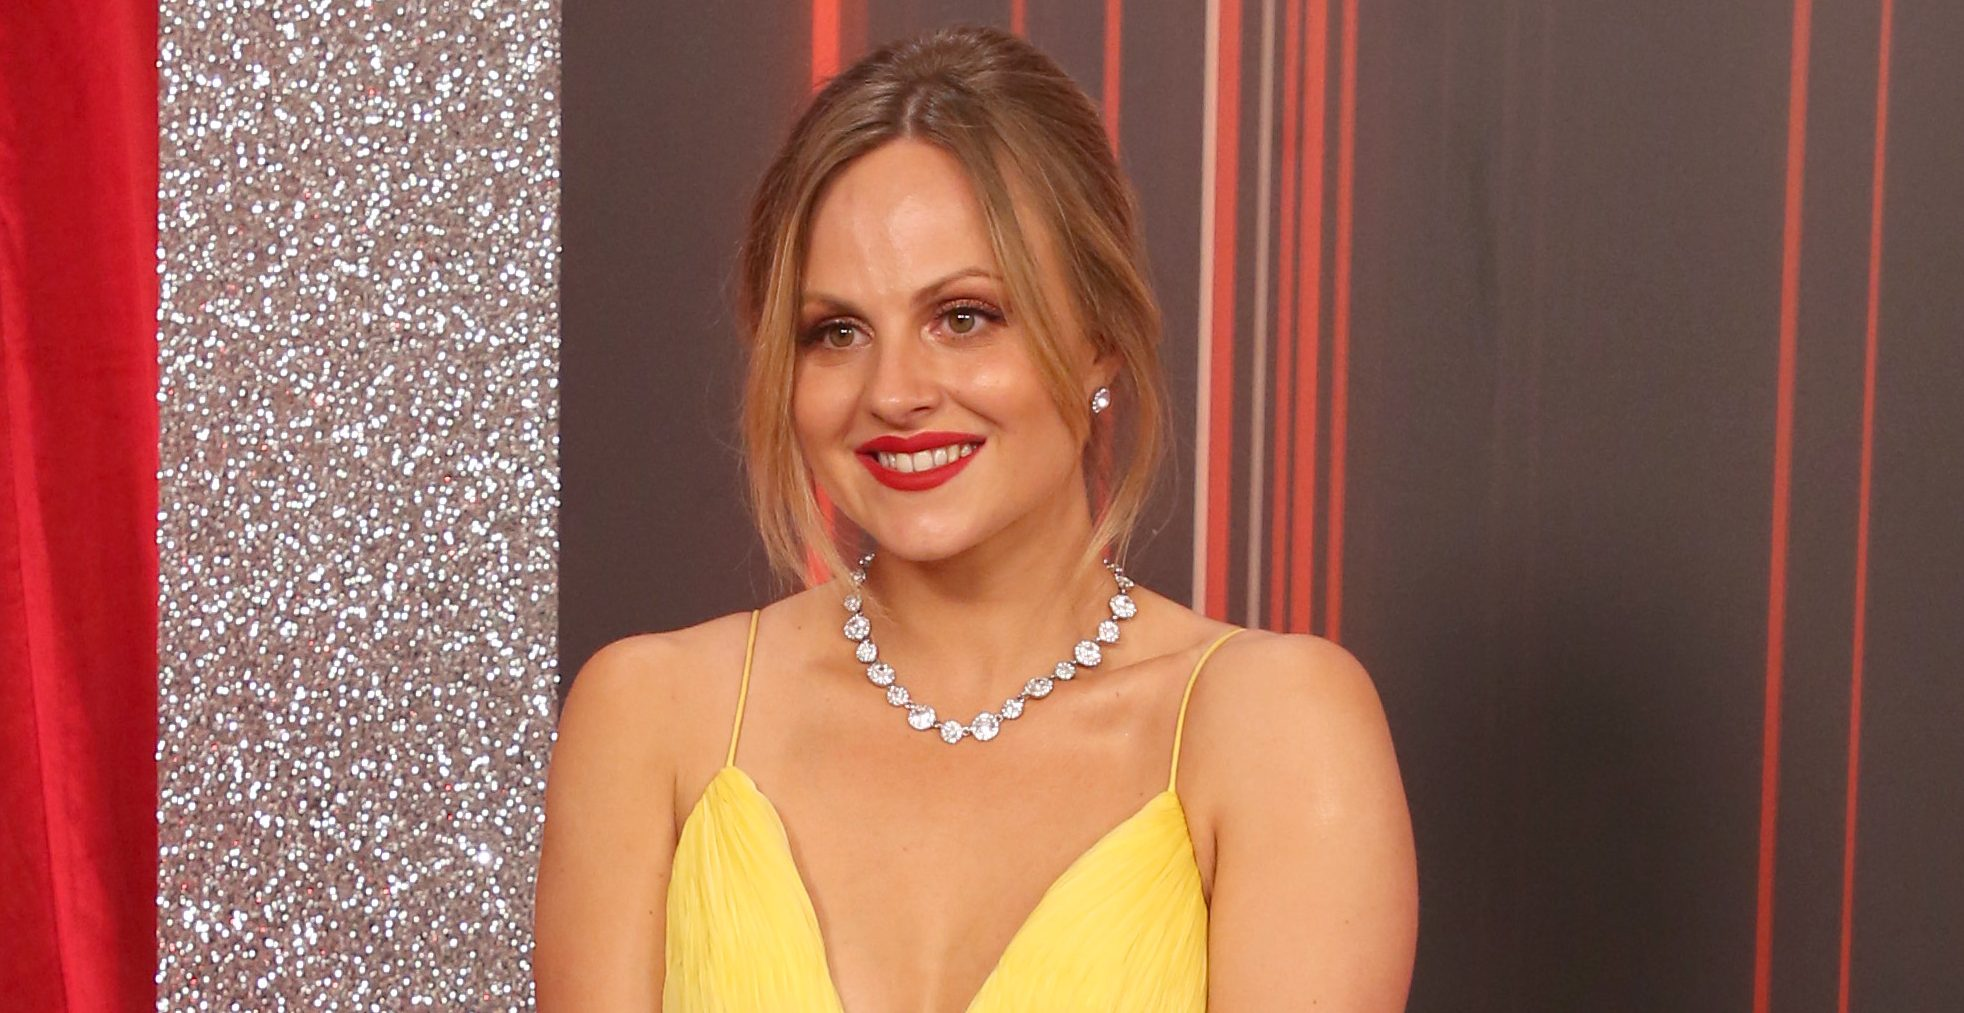 Stars attend the British Soap Awards 2019 at The Lowry in Manchester Pictured: Tina O'Brien Ref: SPL5094913 010619 NON-EXCLUSIVE Picture by: SplashNews.com Splash News and Pictures Los Angeles: 310-821-2666 New York: 212-619-2666 London: 0207 644 7656 Milan: 02 4399 8577 photodesk@splashnews.com World Rights